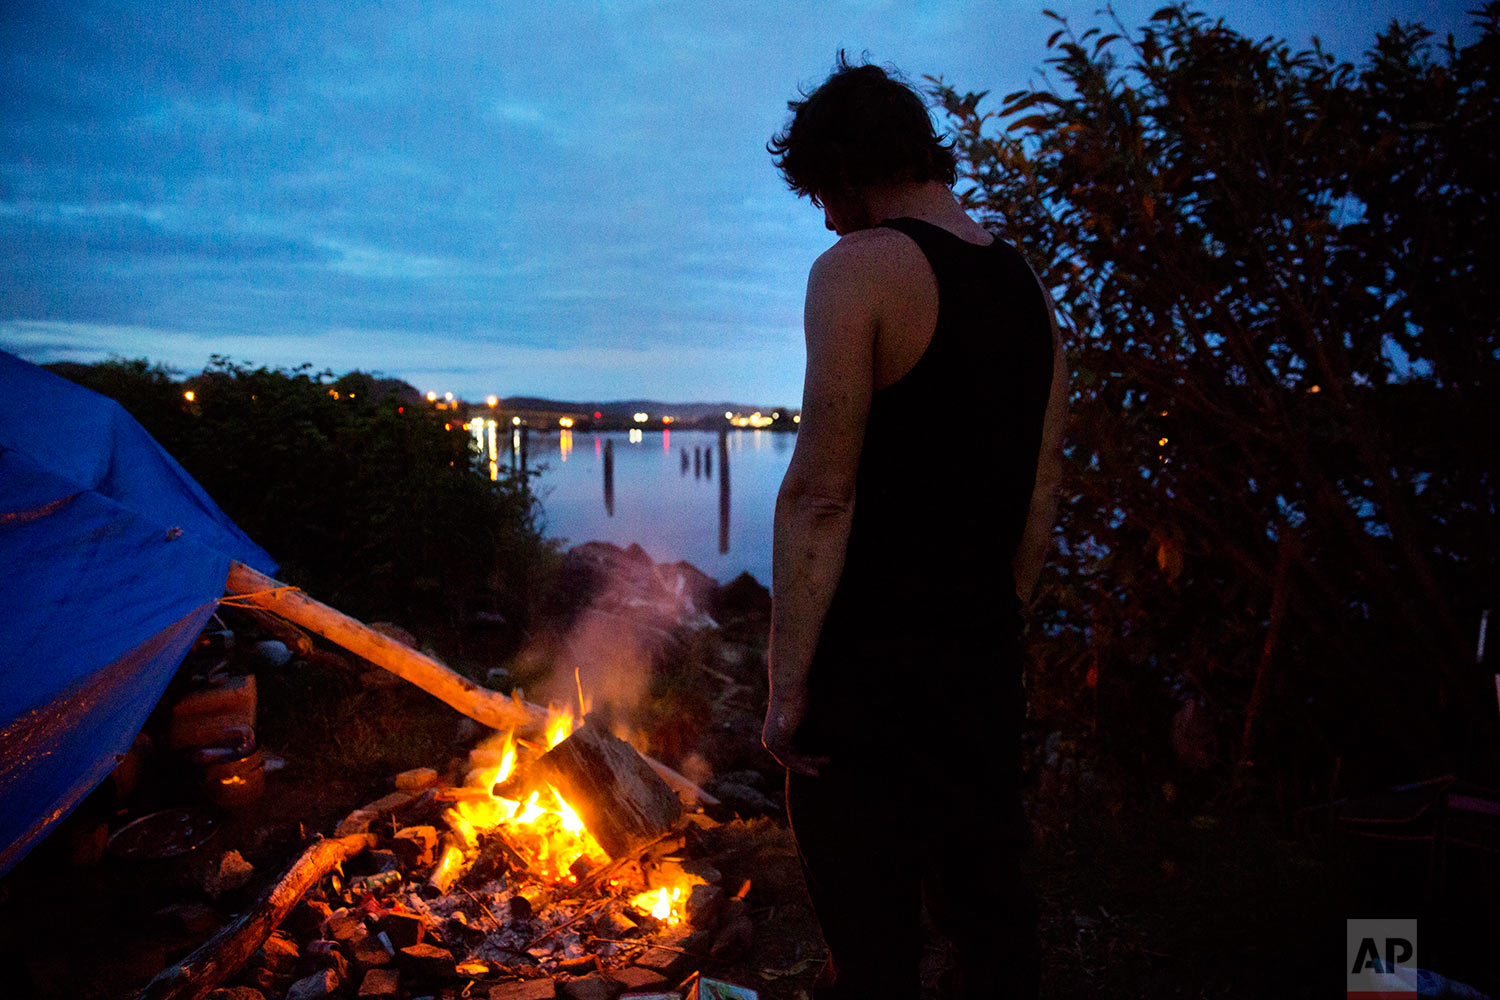 """Alan, who is getting treated at a nearby methadone clinic while trying to kick his heroin addiction, stands by the fire outside his tent at the homeless encampment where he lives along the river in Aberdeen, Wash., Wednesday June 14, 2017. """"I'm just trying to make it,"""" said Alan who asked not to have his last name published and dreams of having his own RV some day. (AP Photo/David Goldman)"""